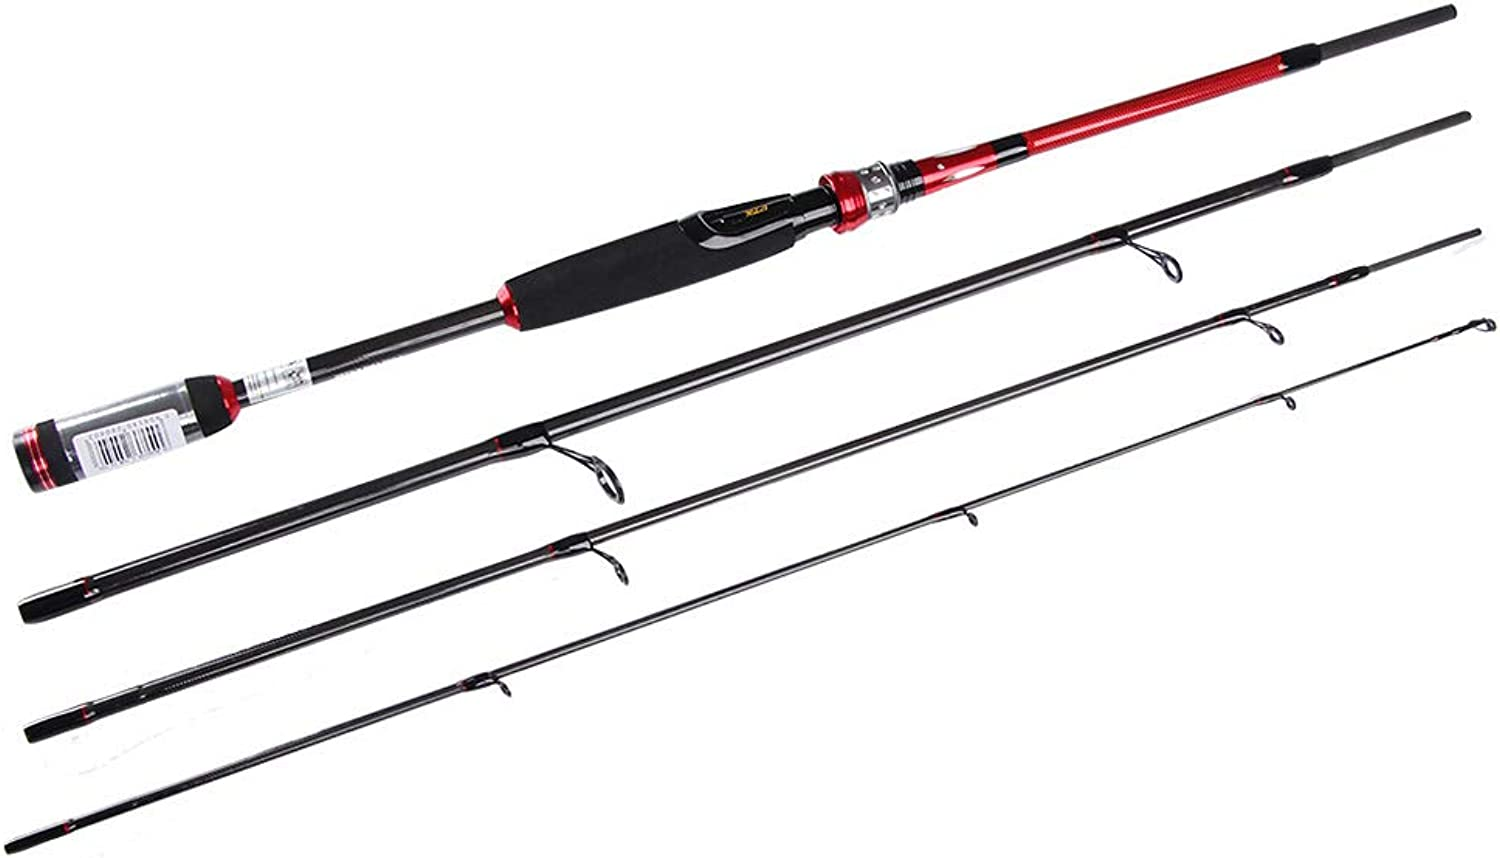 Fishing Rod,Four Sections Carbon Lure Rod,Straight Shank Sea Fishing Rod, 2.1m, 2.4m, 2.7m